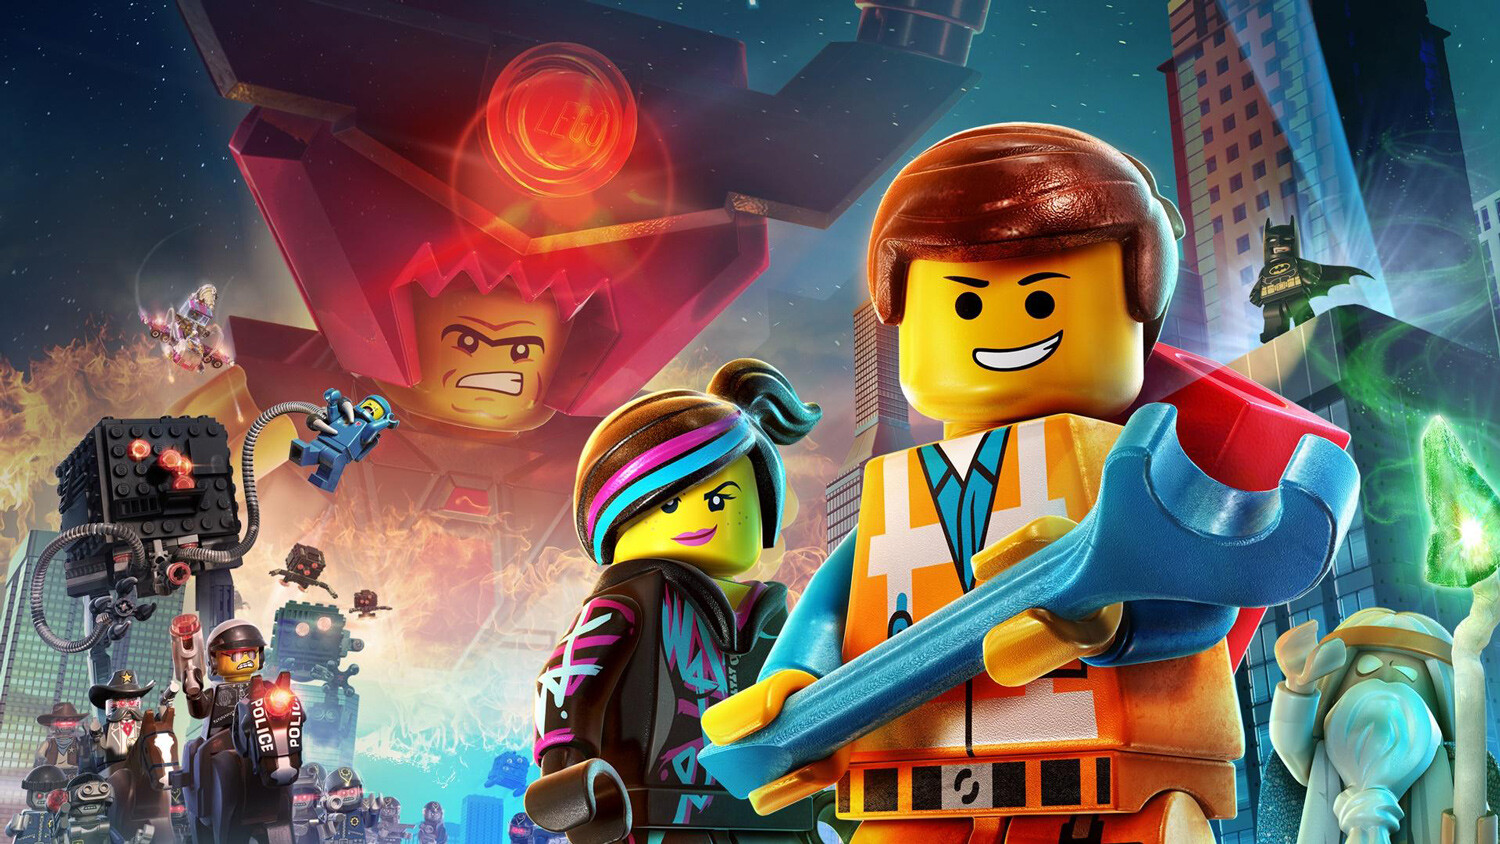 legoMovie_branded-entertainment